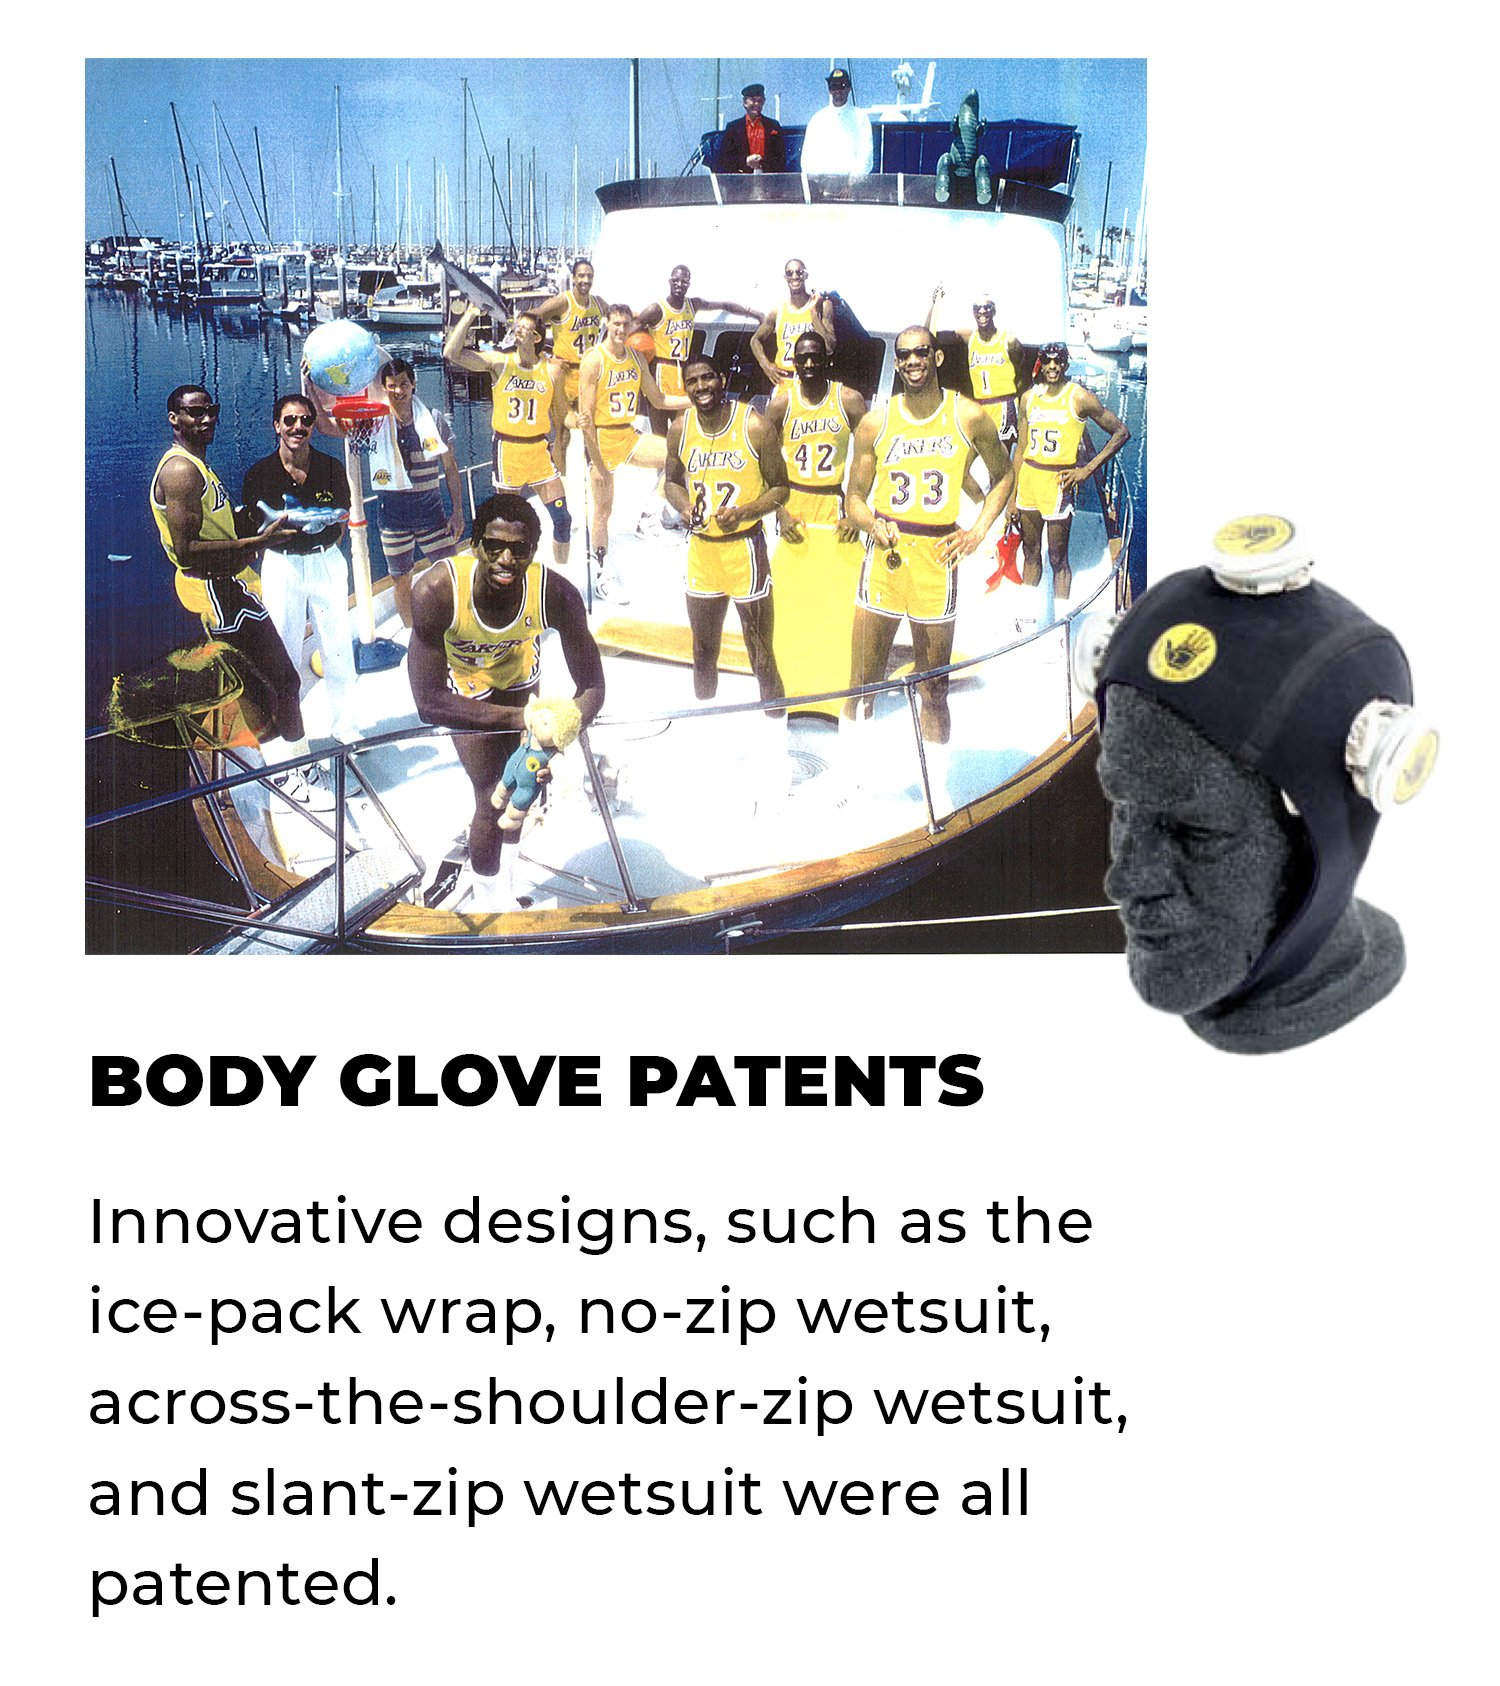 Body Glove Patents | Innovative designs, such as the ice-pack wrap, no-zip wetsuit, across-the-shoulder-zip wetsuit, and slant-zip wetsuit were all patented.